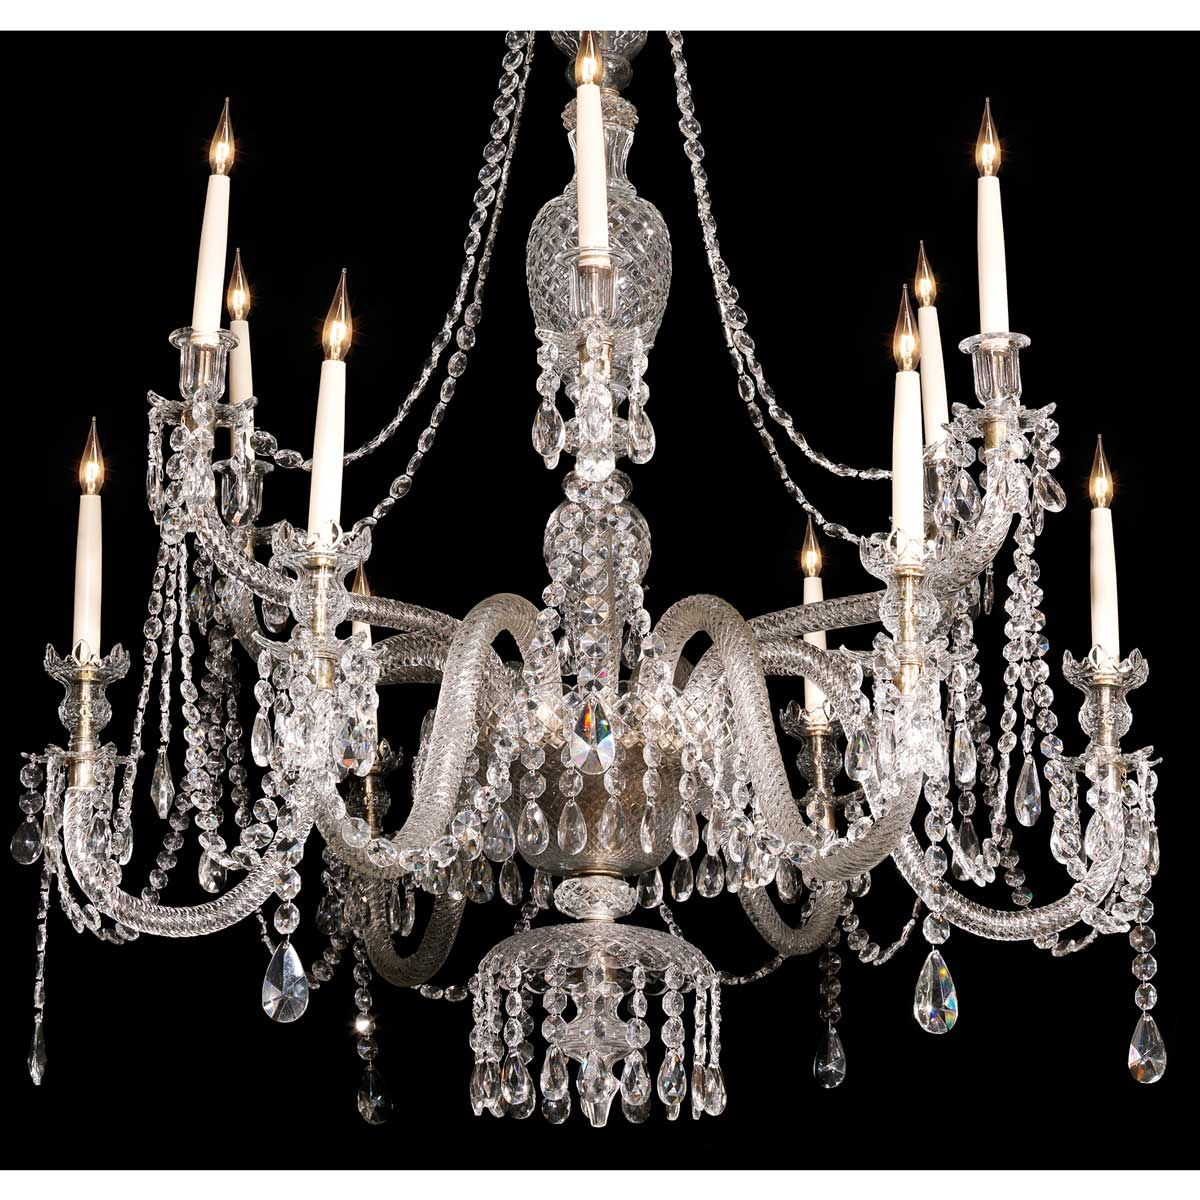 The Lead Crystal Curzon Chandelier